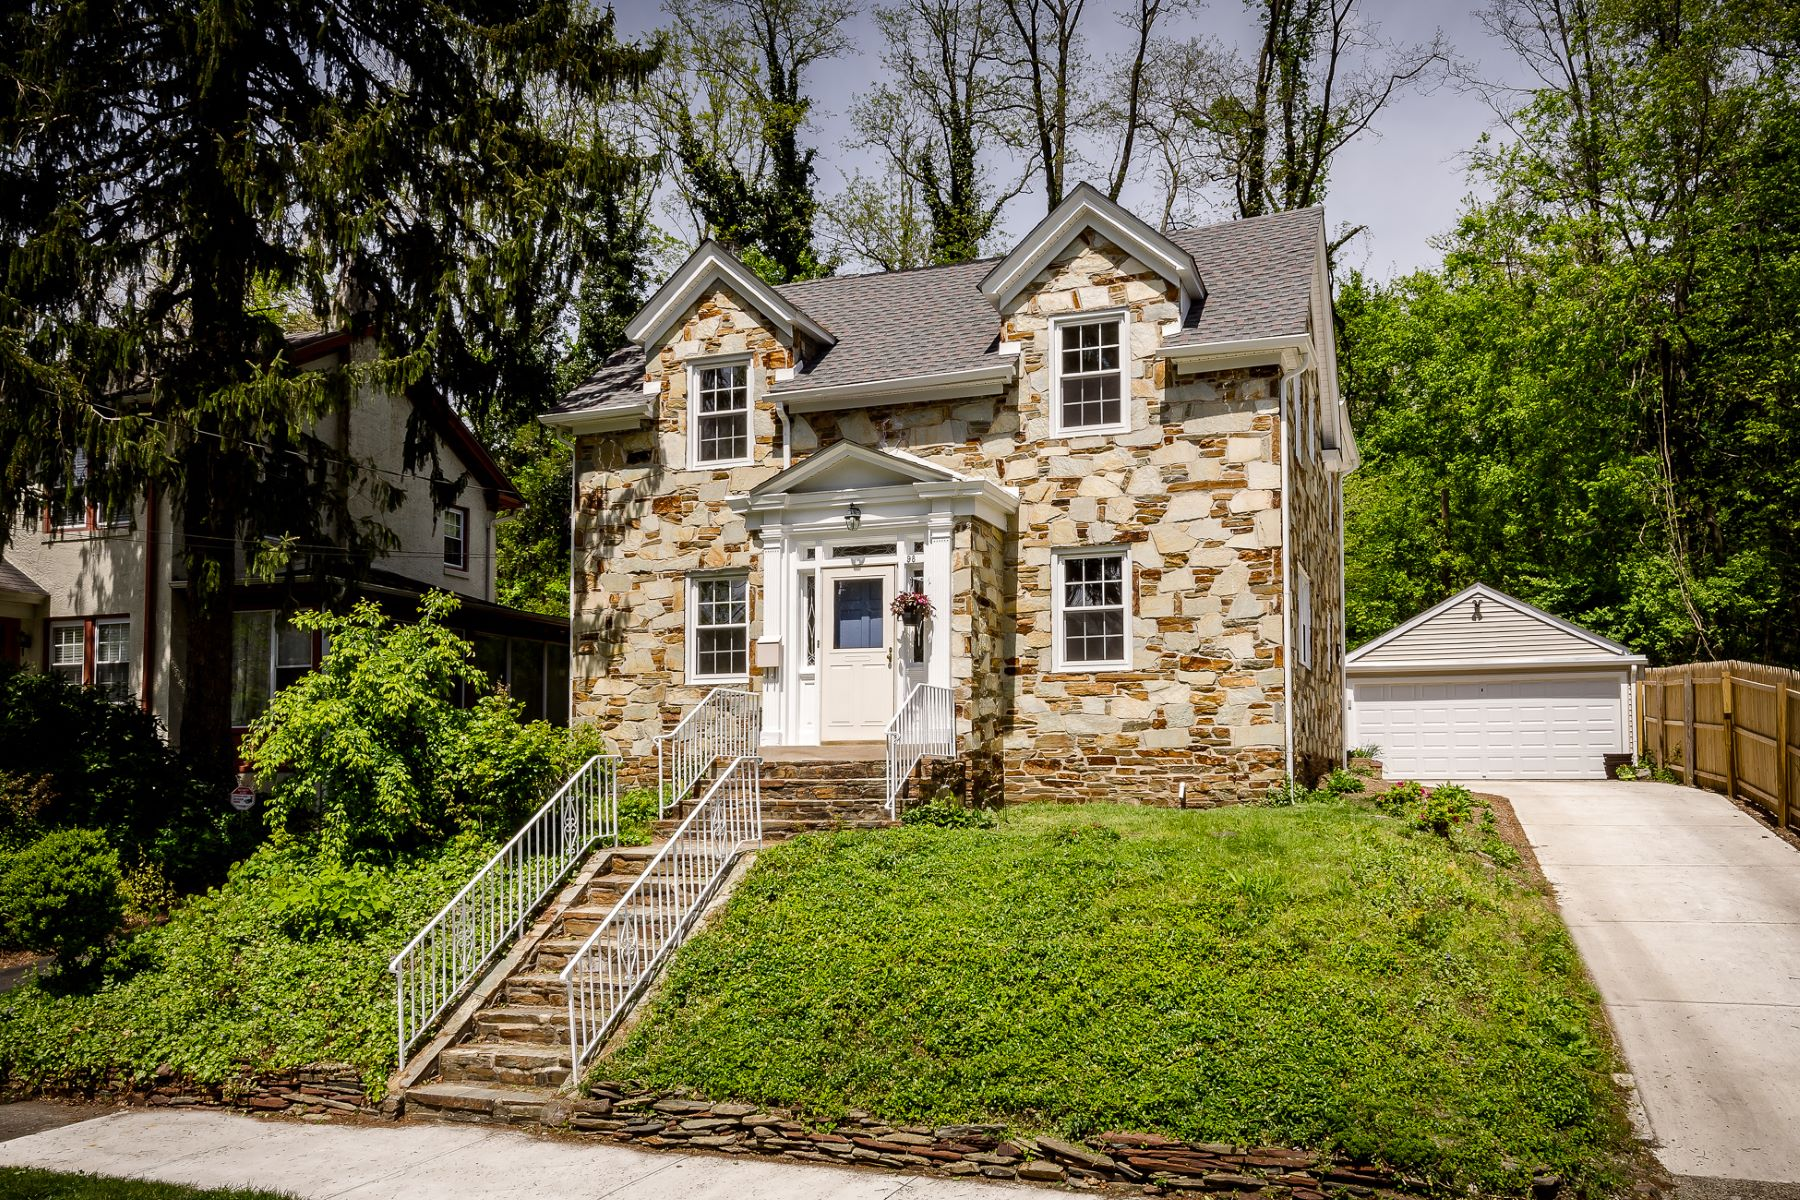 Single Family Home for Sale at Glen Afton Charmer Backs to the D & R Canal 98 School Lane, Trenton, New Jersey 08618 United States